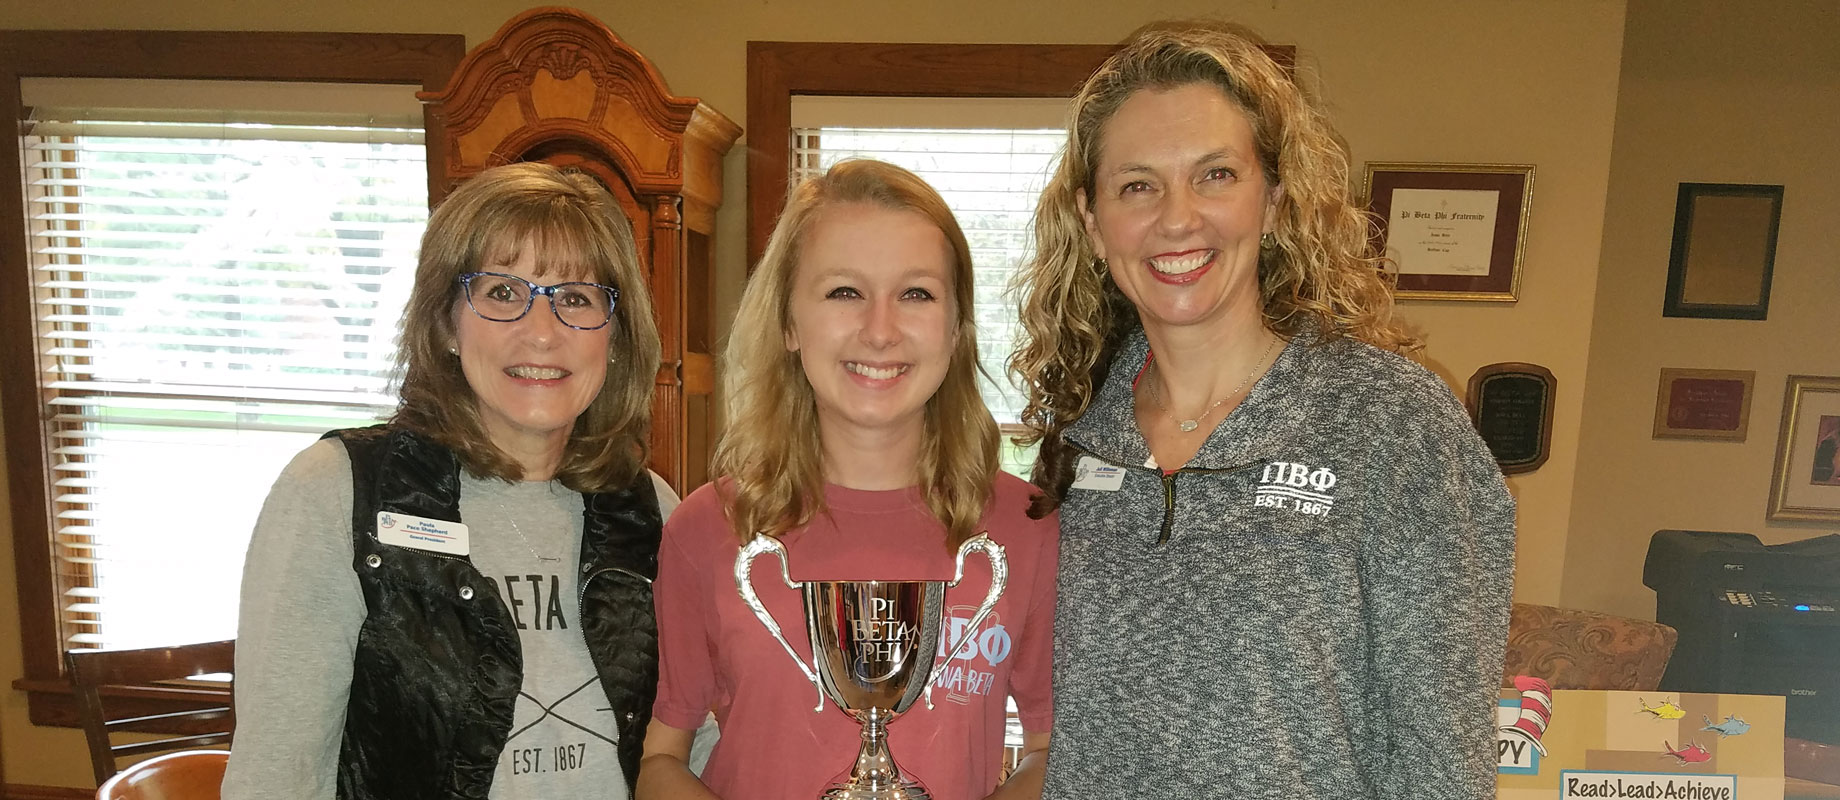 Simpson's Pi Beta Phi Named  Top Chapter in Country